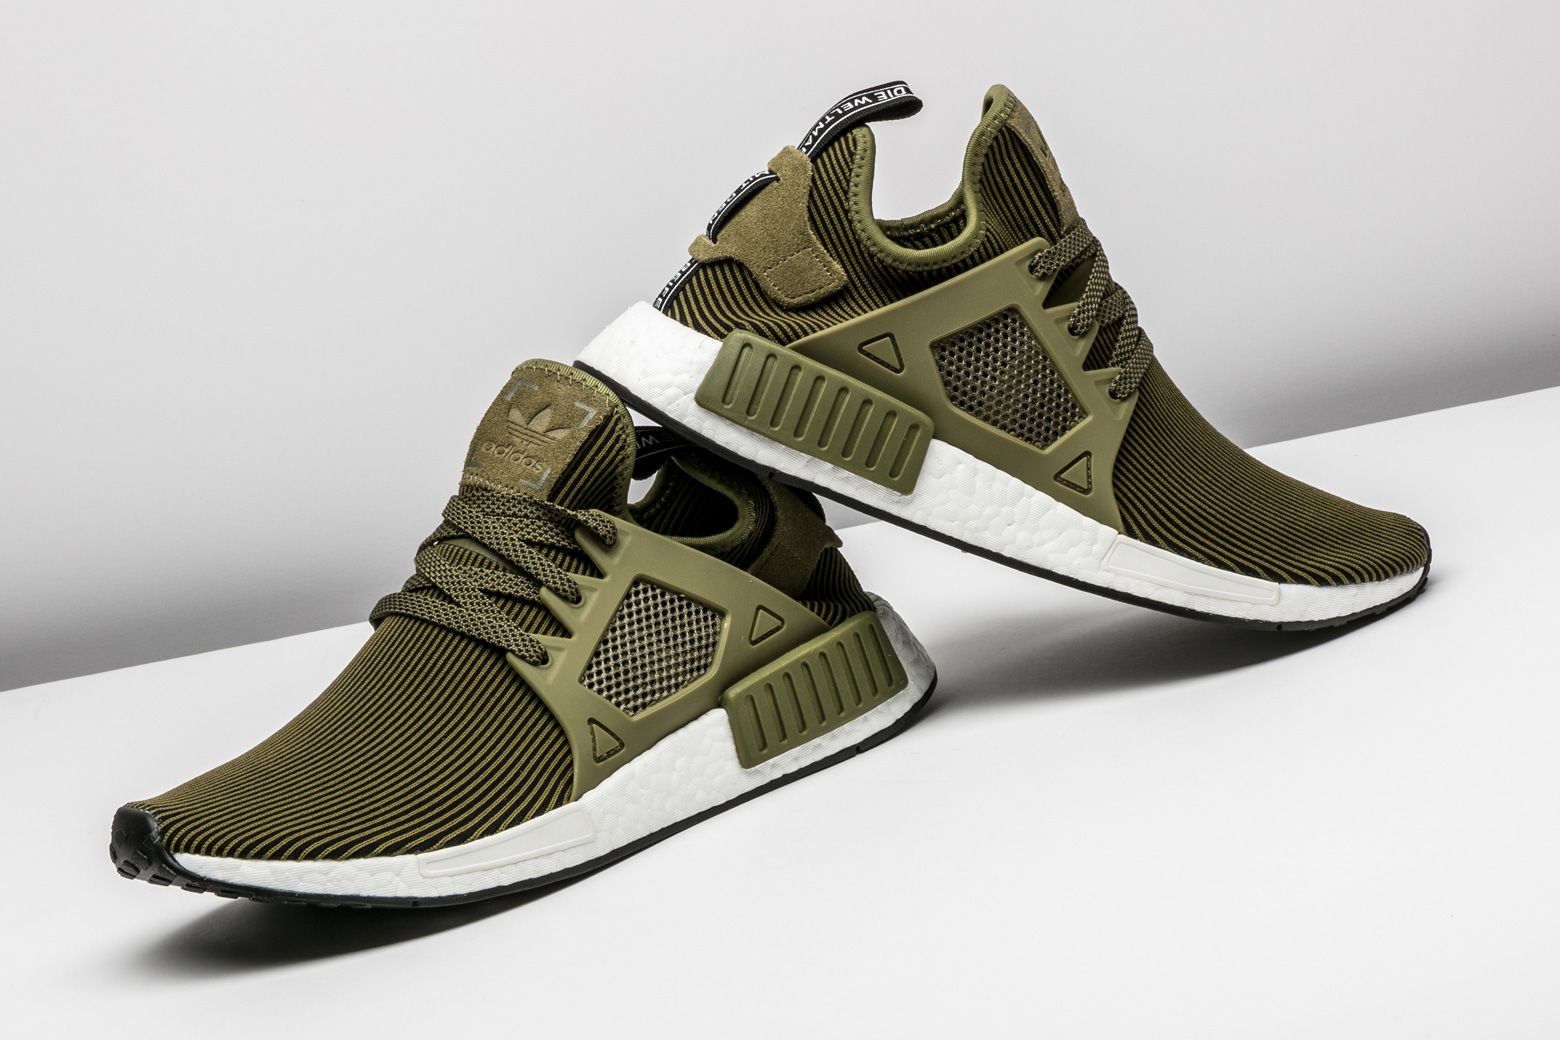 new styles 70ced 5d14e The adidas NMD XR1 in a very fall-centric olive are very on par with